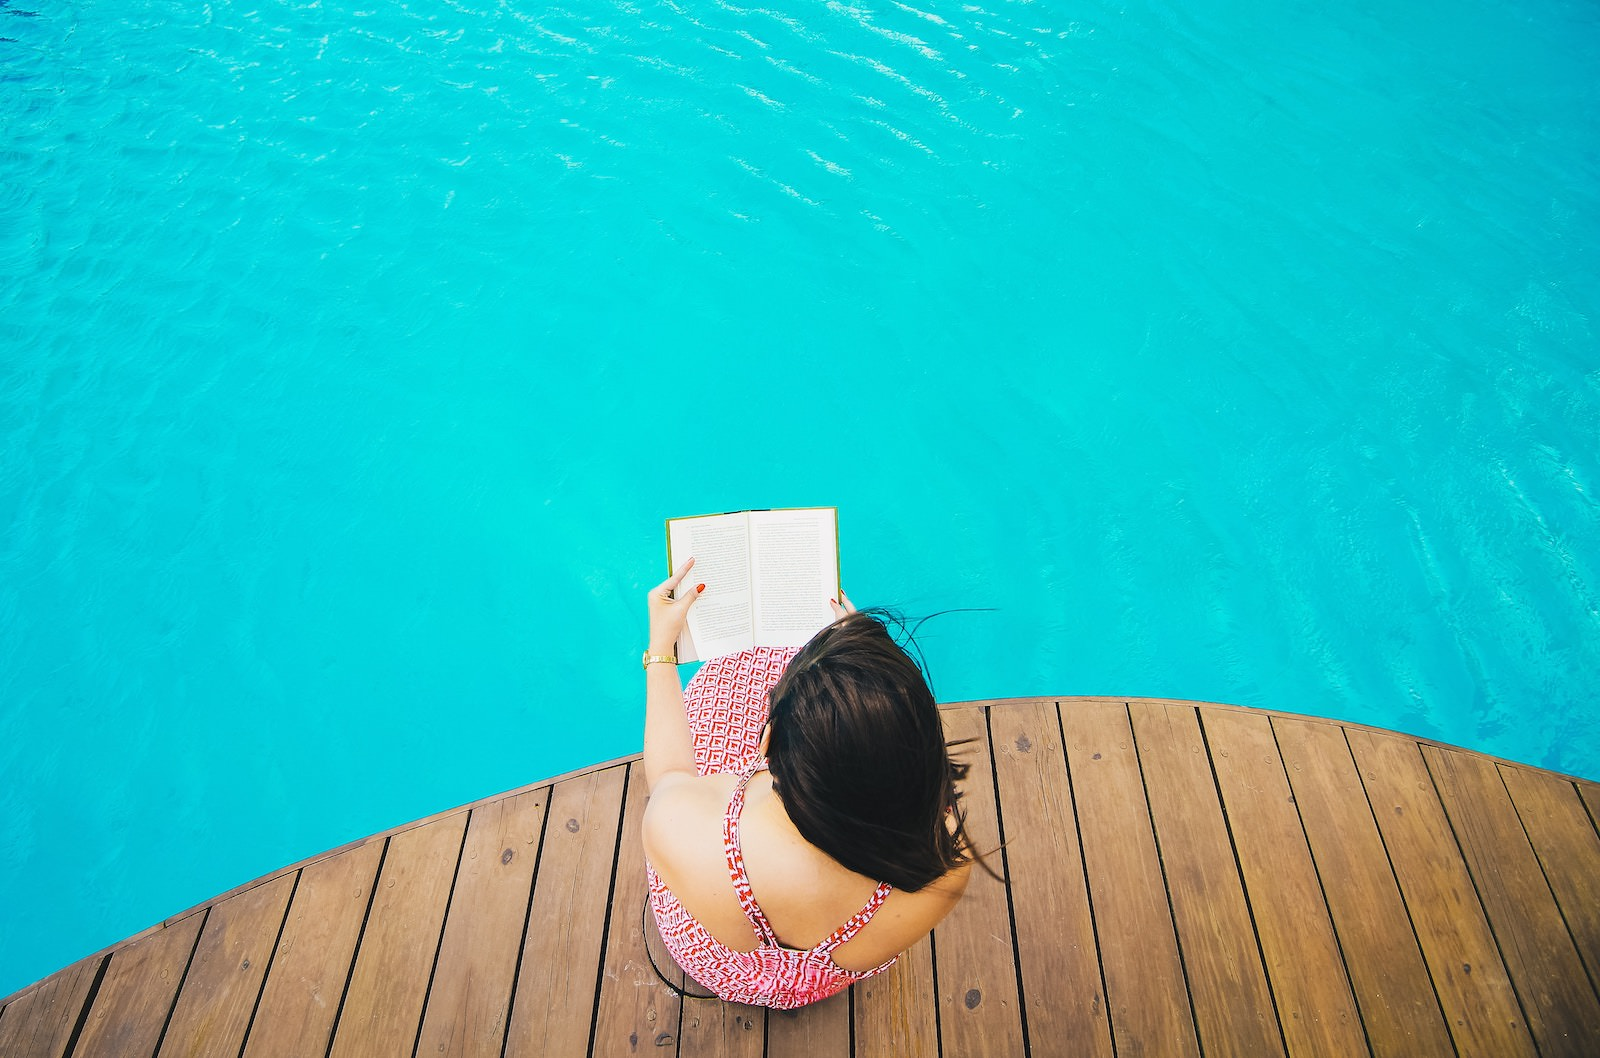 angello-lopez-260566-unsplash-reading-by-the-pool.jpg